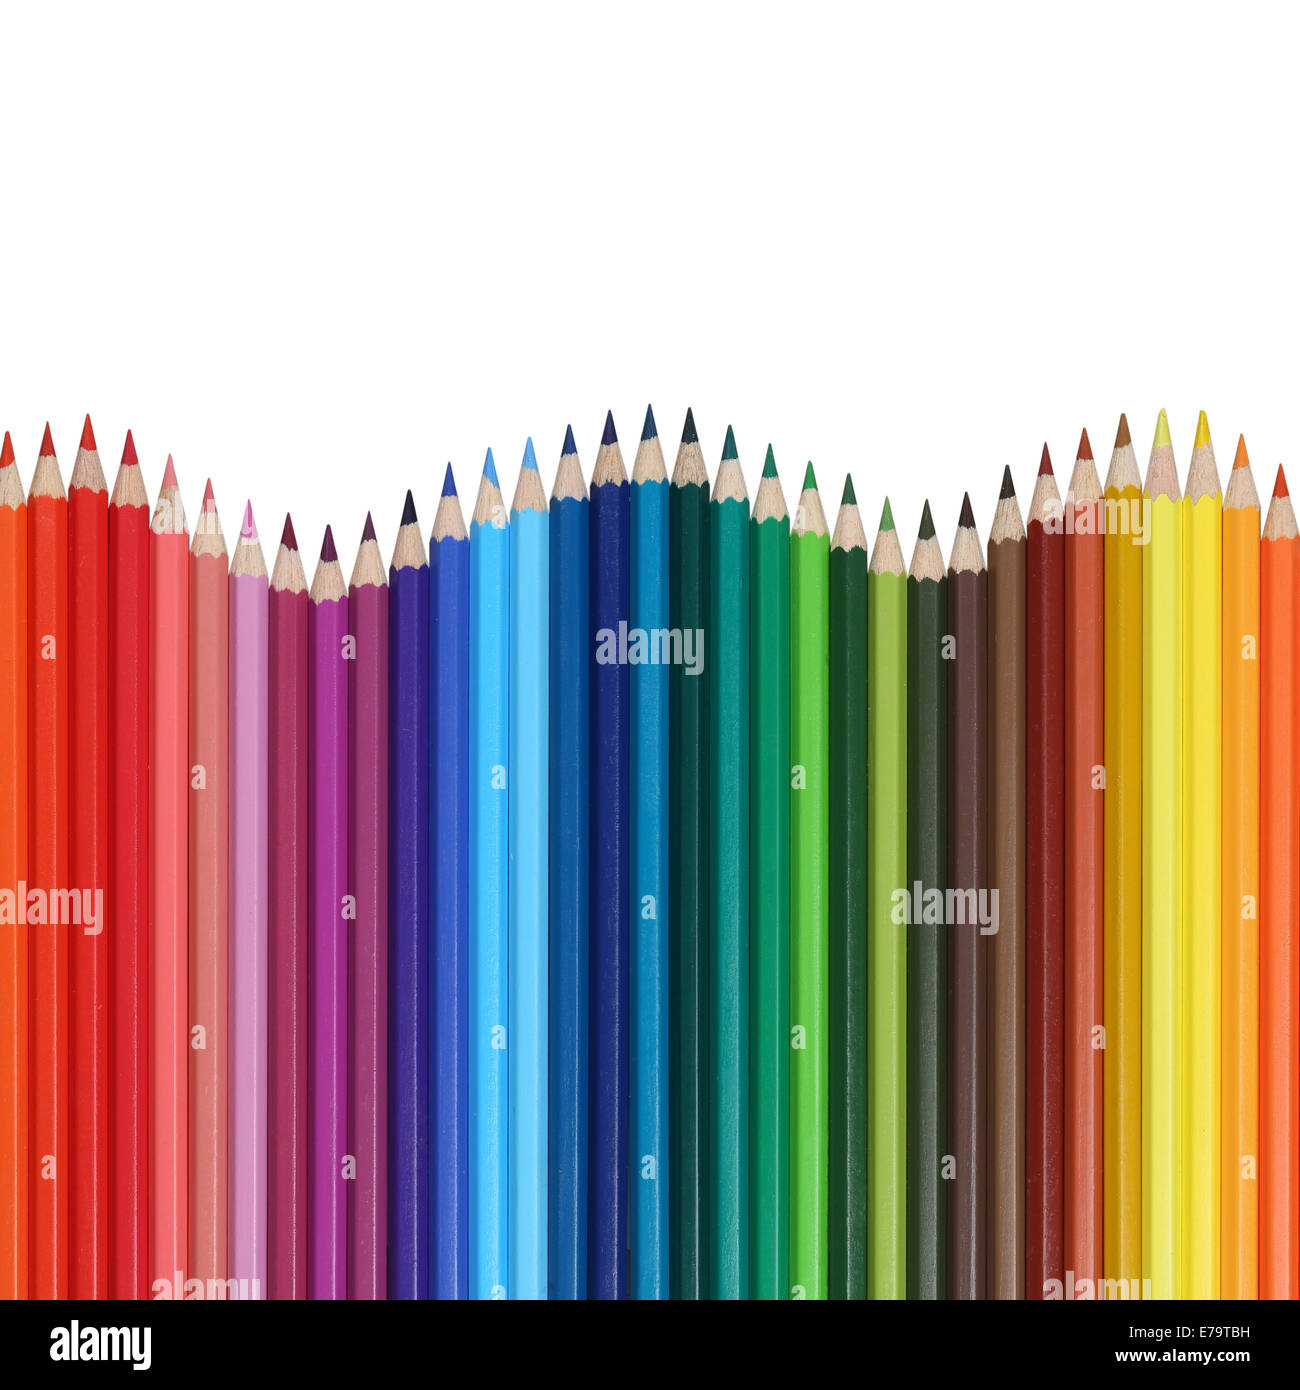 School supplies colored pencils forming a wave business boom and recession - Stock Image